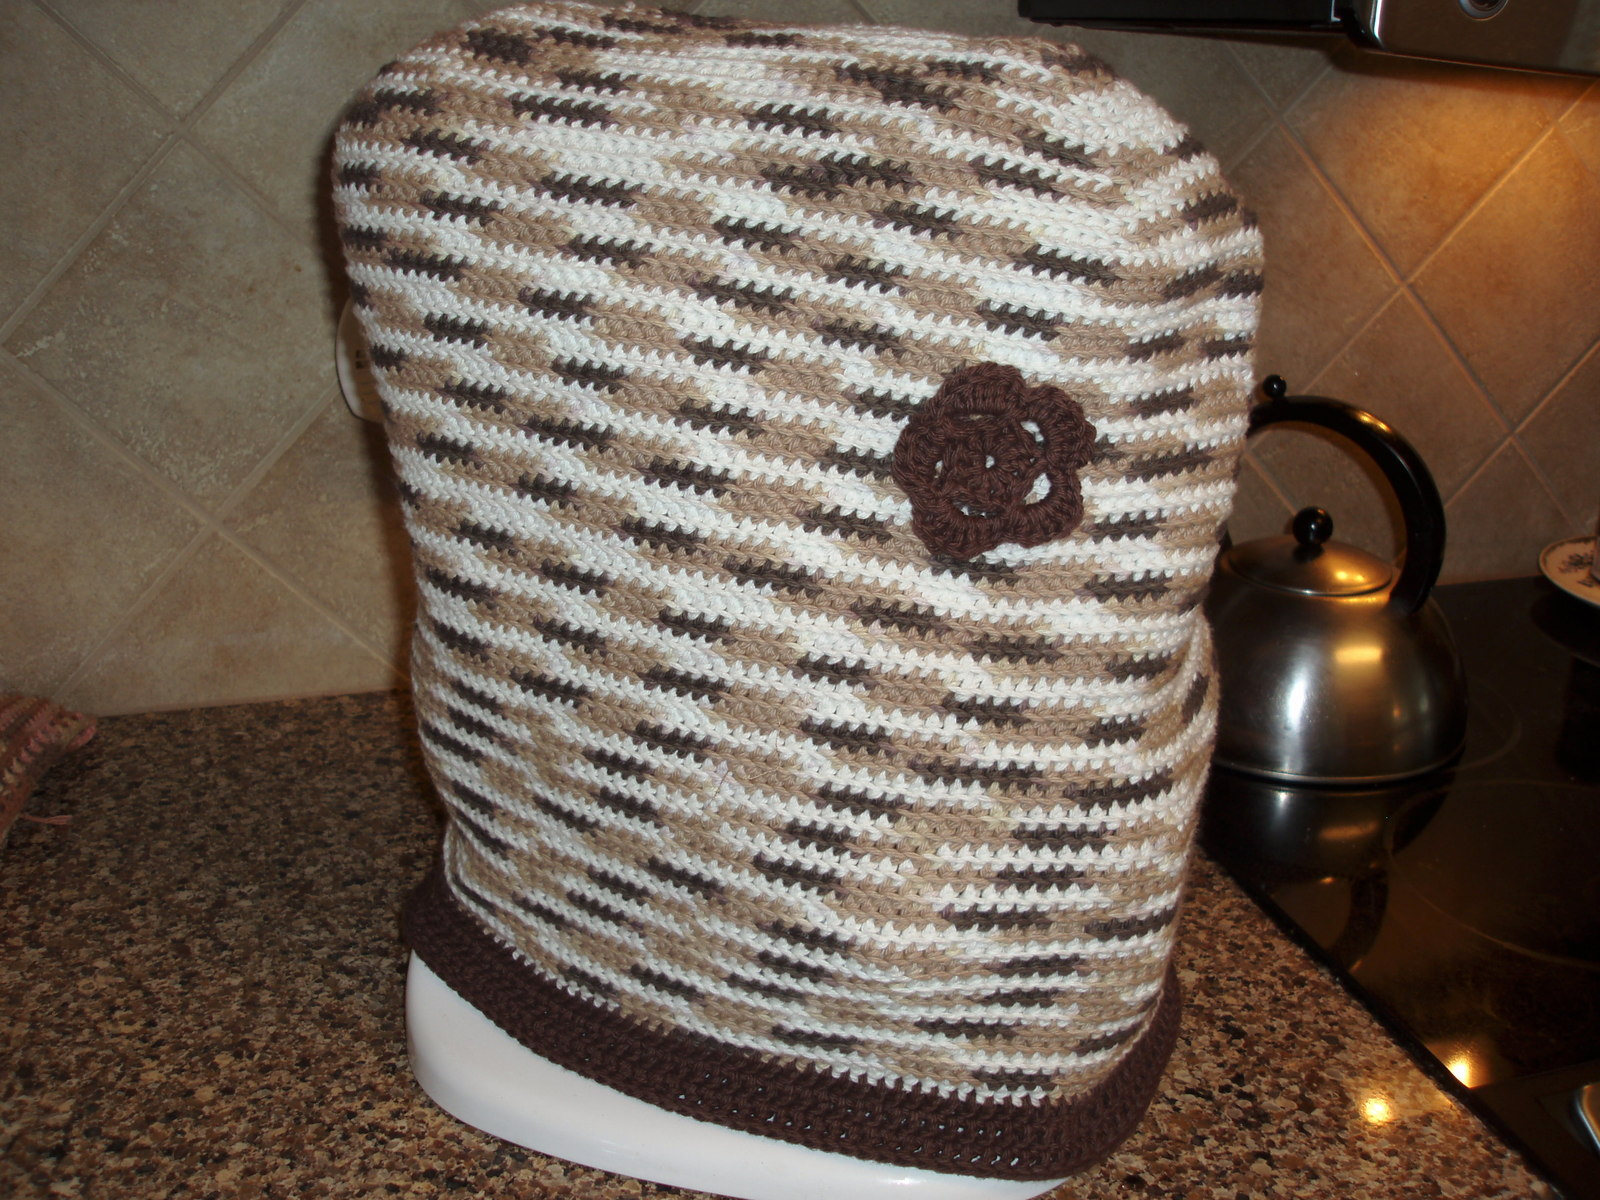 appliance kitchen aid mixer cover crocheted and 50 similar items